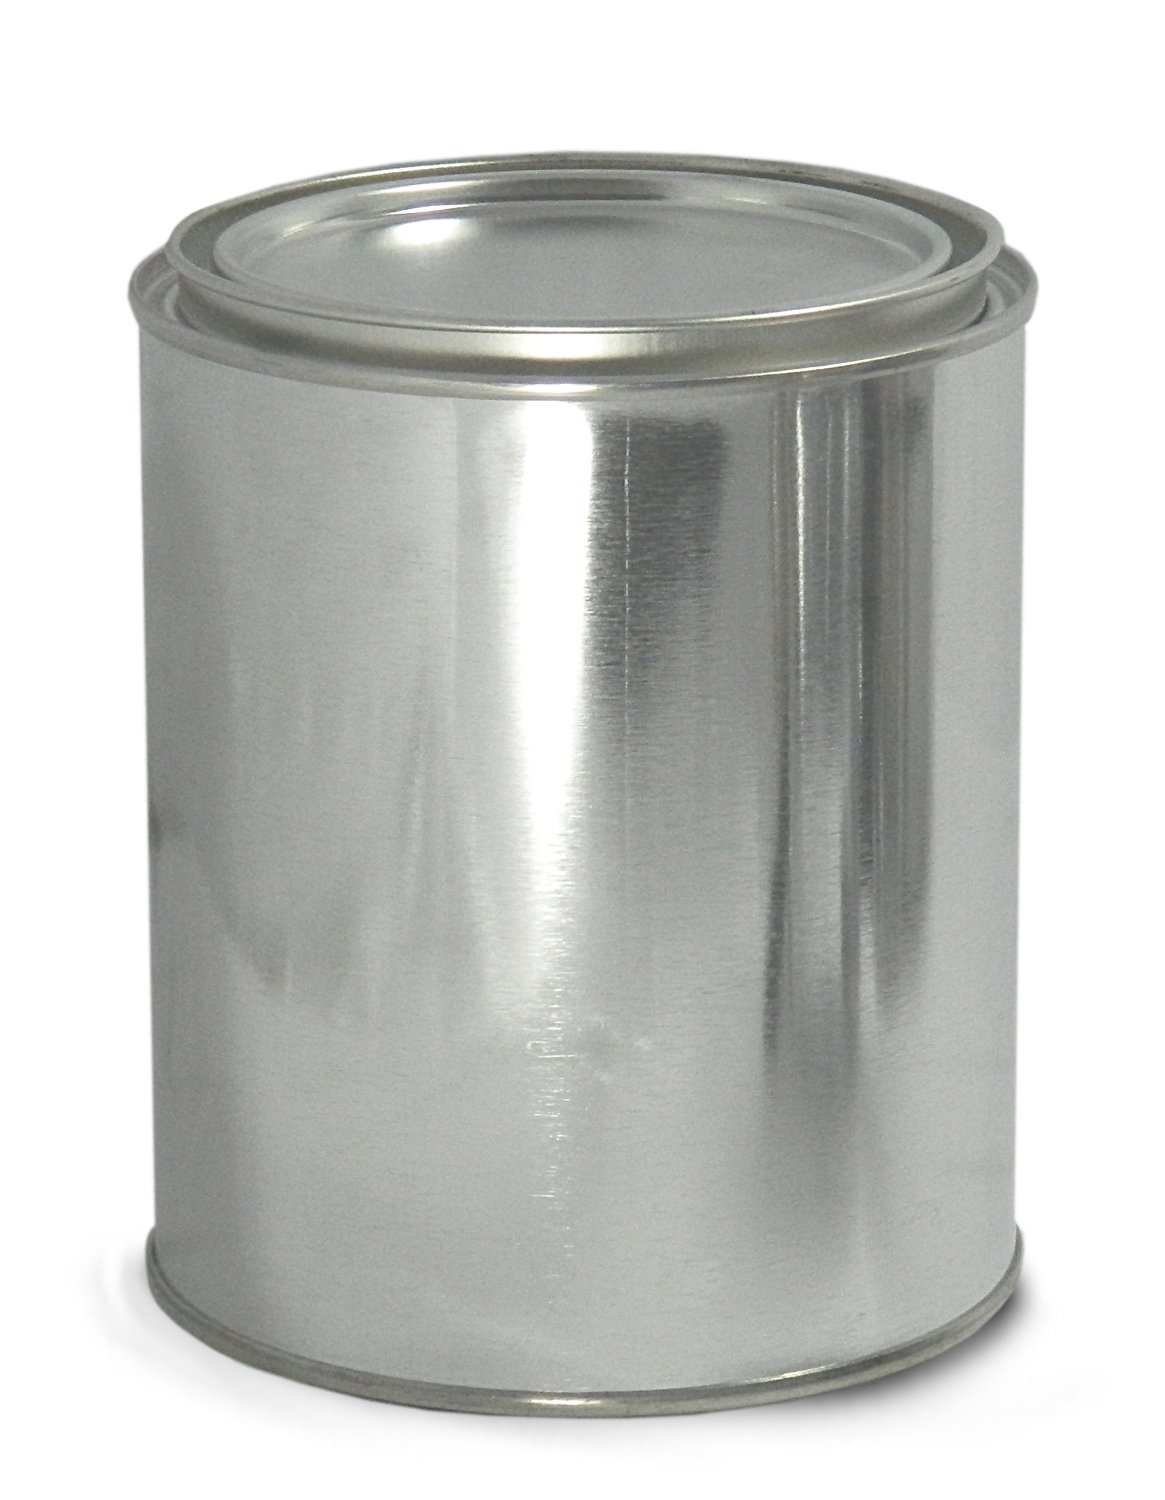 Qorpak MET-03086 Metal Unlined Round Paint Can with Triple Tite Lid and Securing Clips, 1/4 pint Capacity, 208 mm Diameter x 201 mm Height, Case of 48